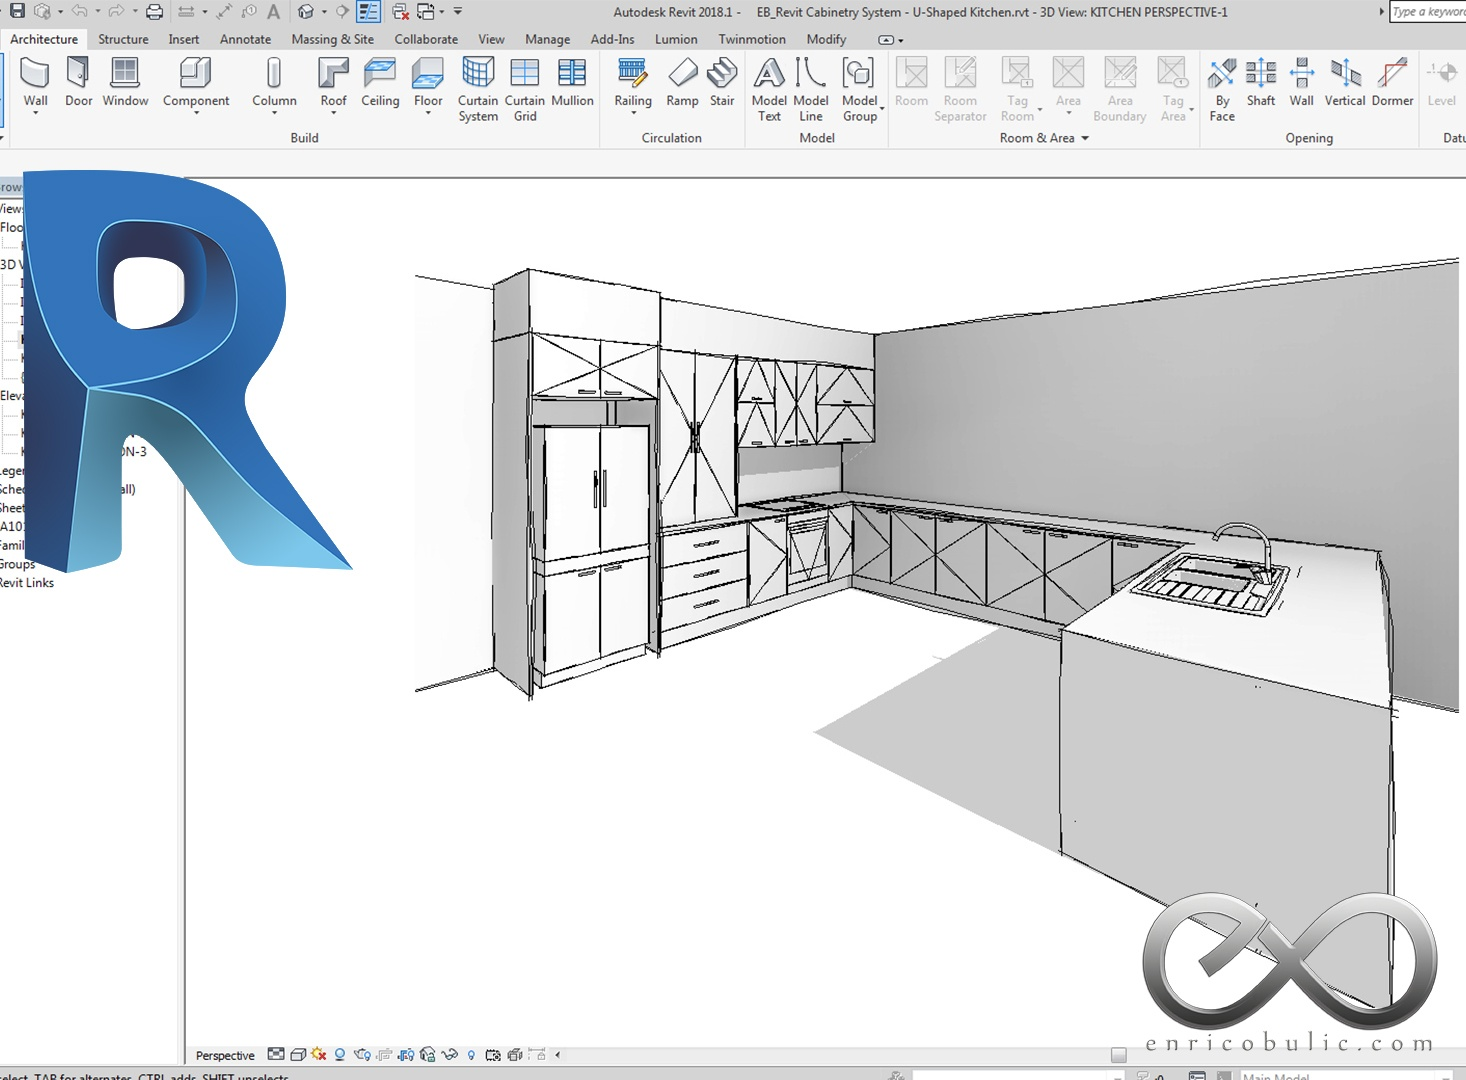 Revit Complete Cabinetry System : Kitchen-1